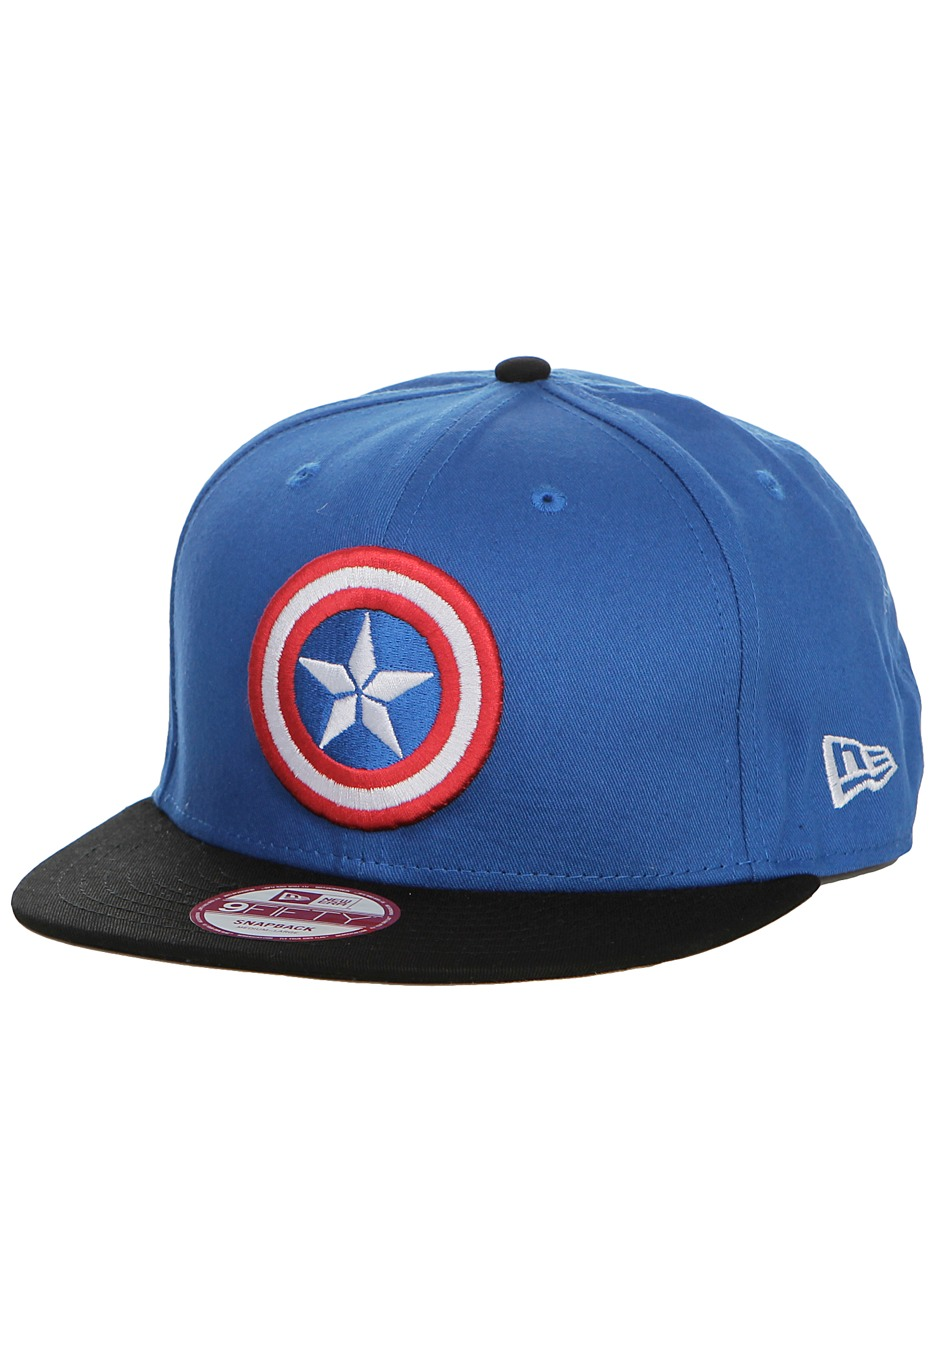 f03f5cc445797 New Era - Avengers Logo Captain America Black Blue Snapback - Cap -  Impericon.com Worldwide